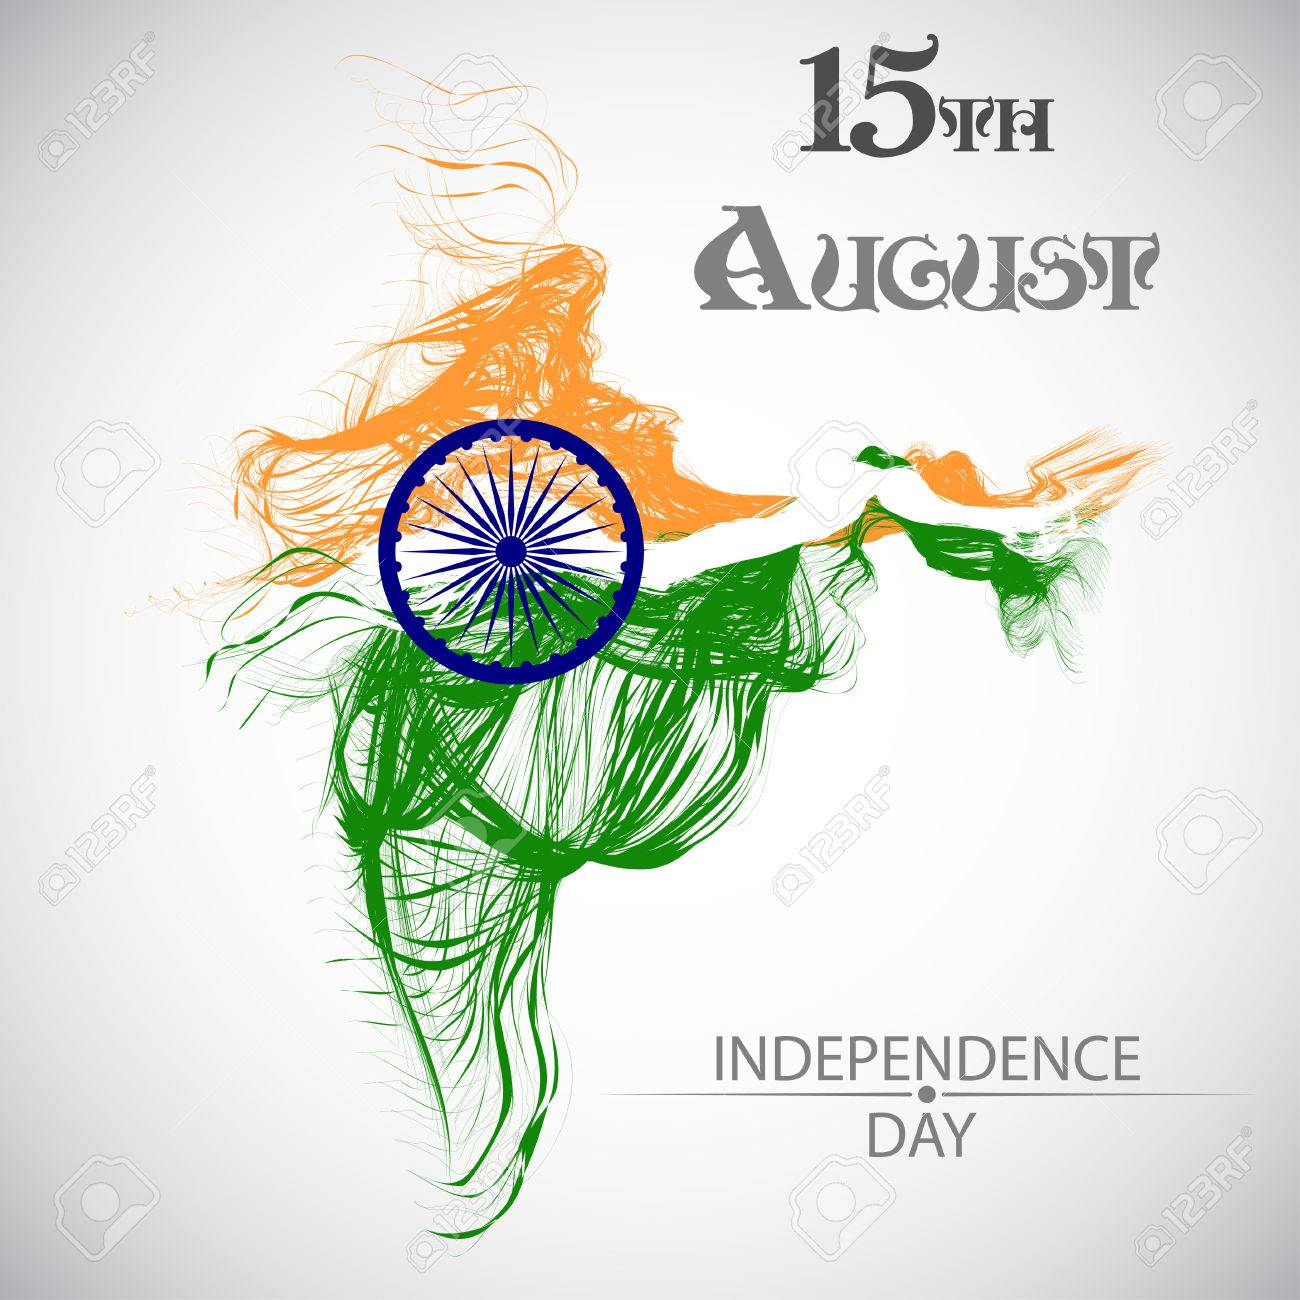 Indian Independence Day Vector Background With Stylish Text 15th Royalty Free Cliparts Vectors And Stock Illustration Image 61564675